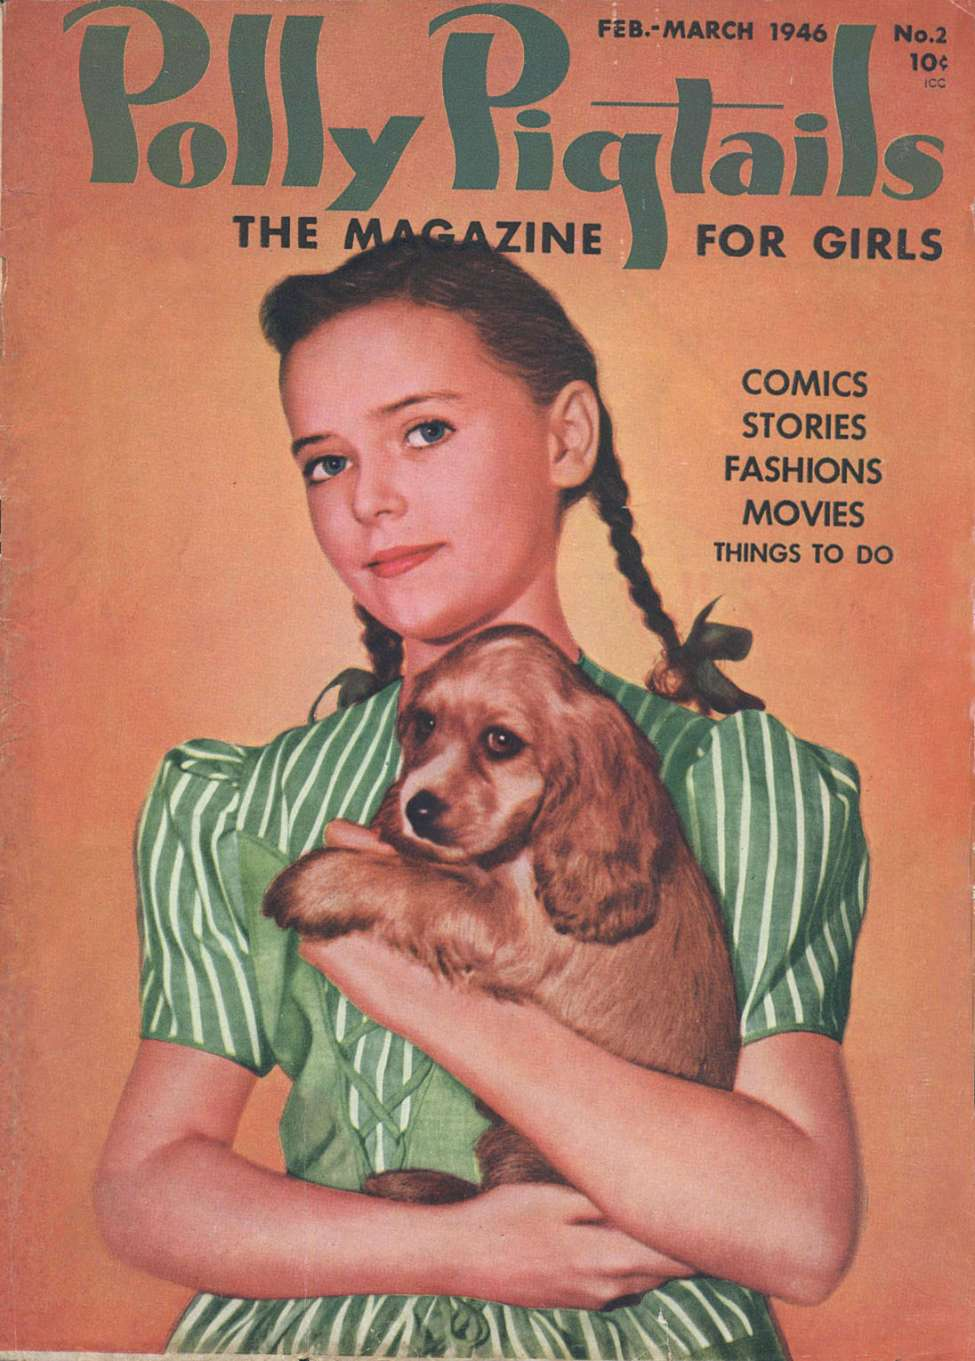 Comic Book Cover For Polly Pigtails #2 - Version 2